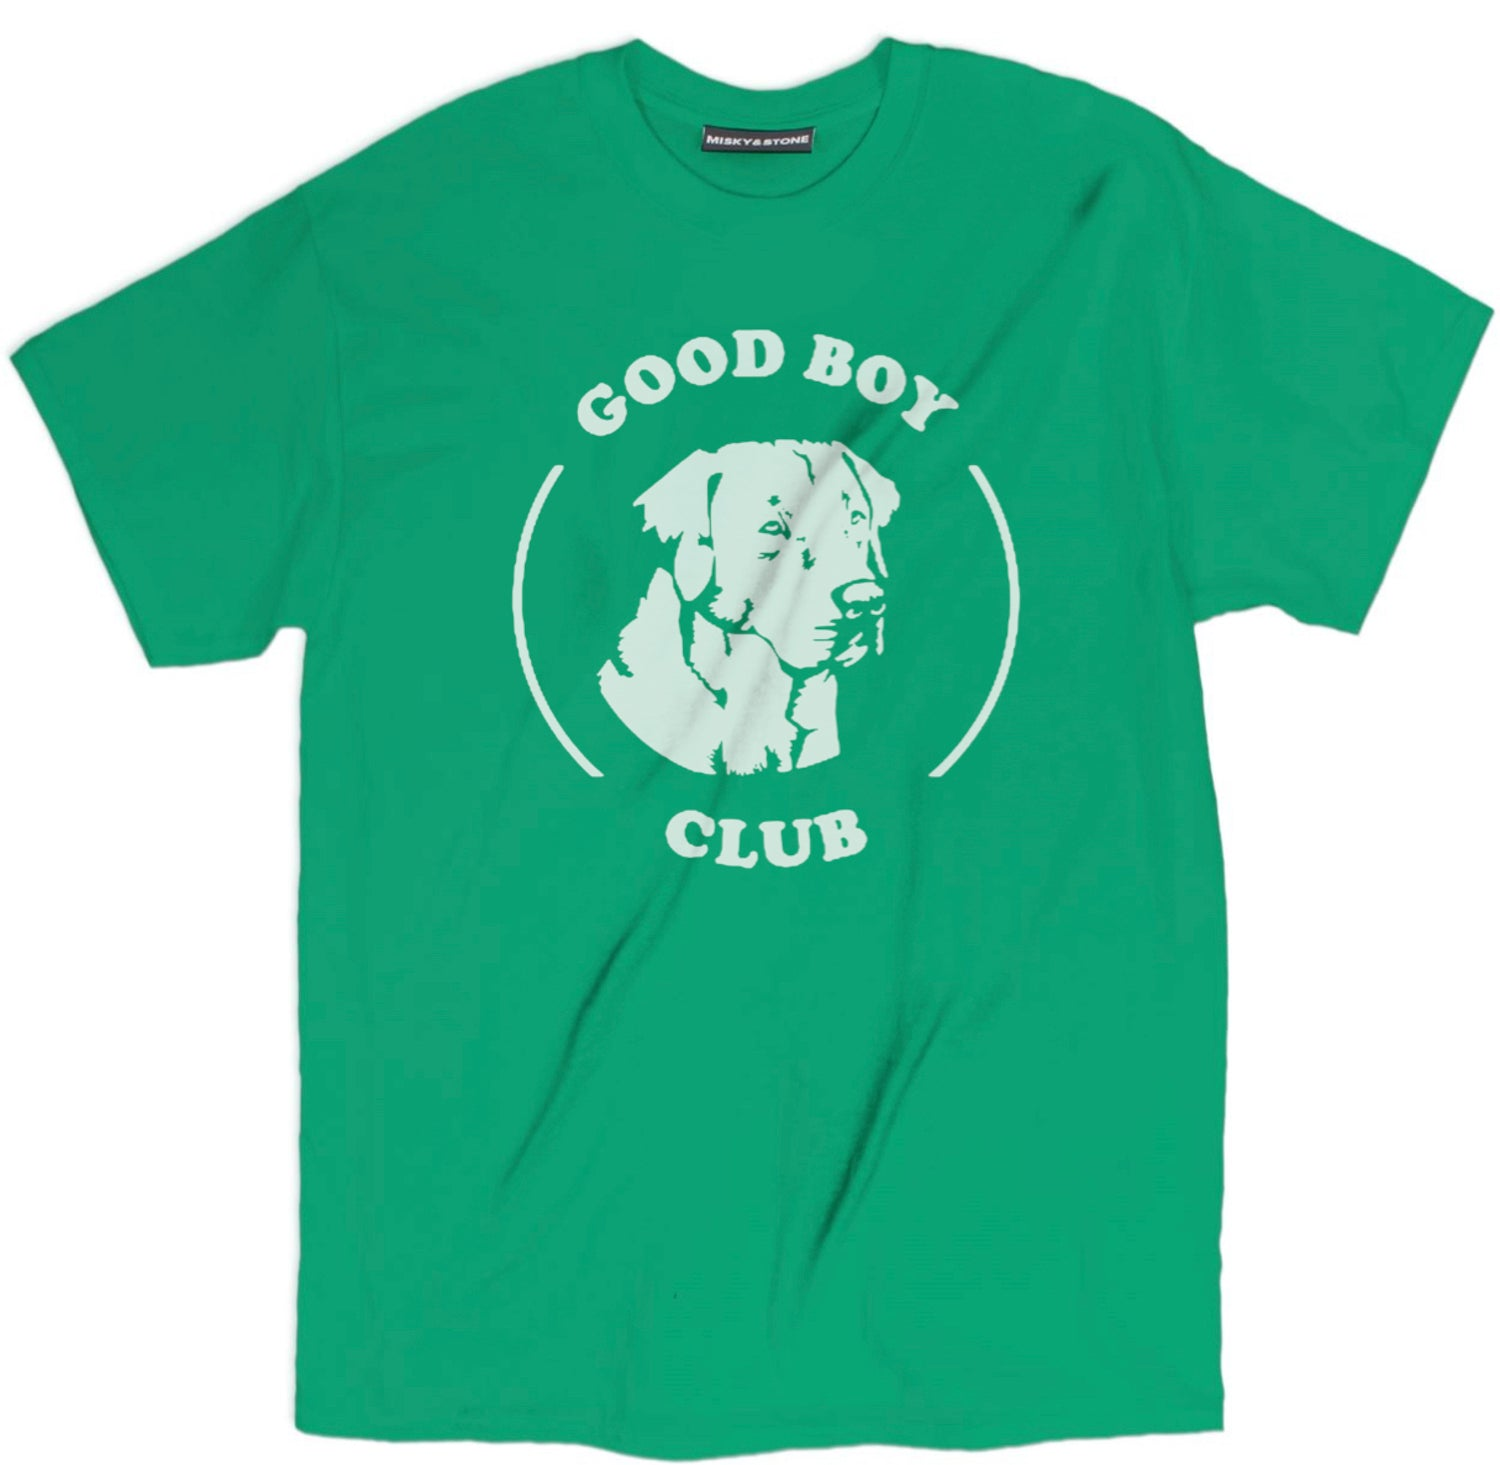 good boy club t shirt, dog t shirts, dog shirts, dog lover t shirts, dog lover shirts, funny dog t shirt, dog tees